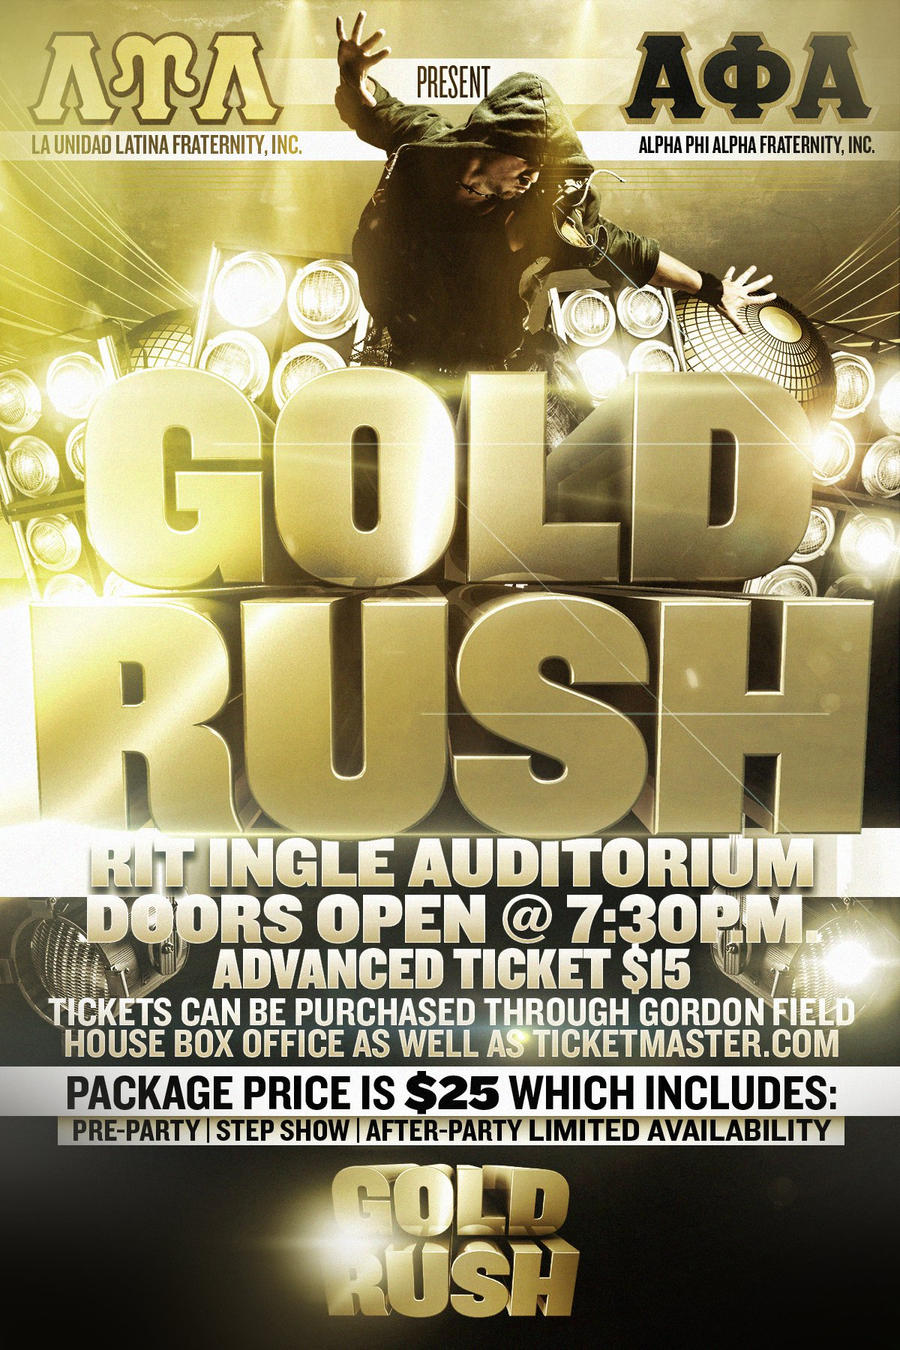 gold rush flyer by v1sualpoetry on deviantart